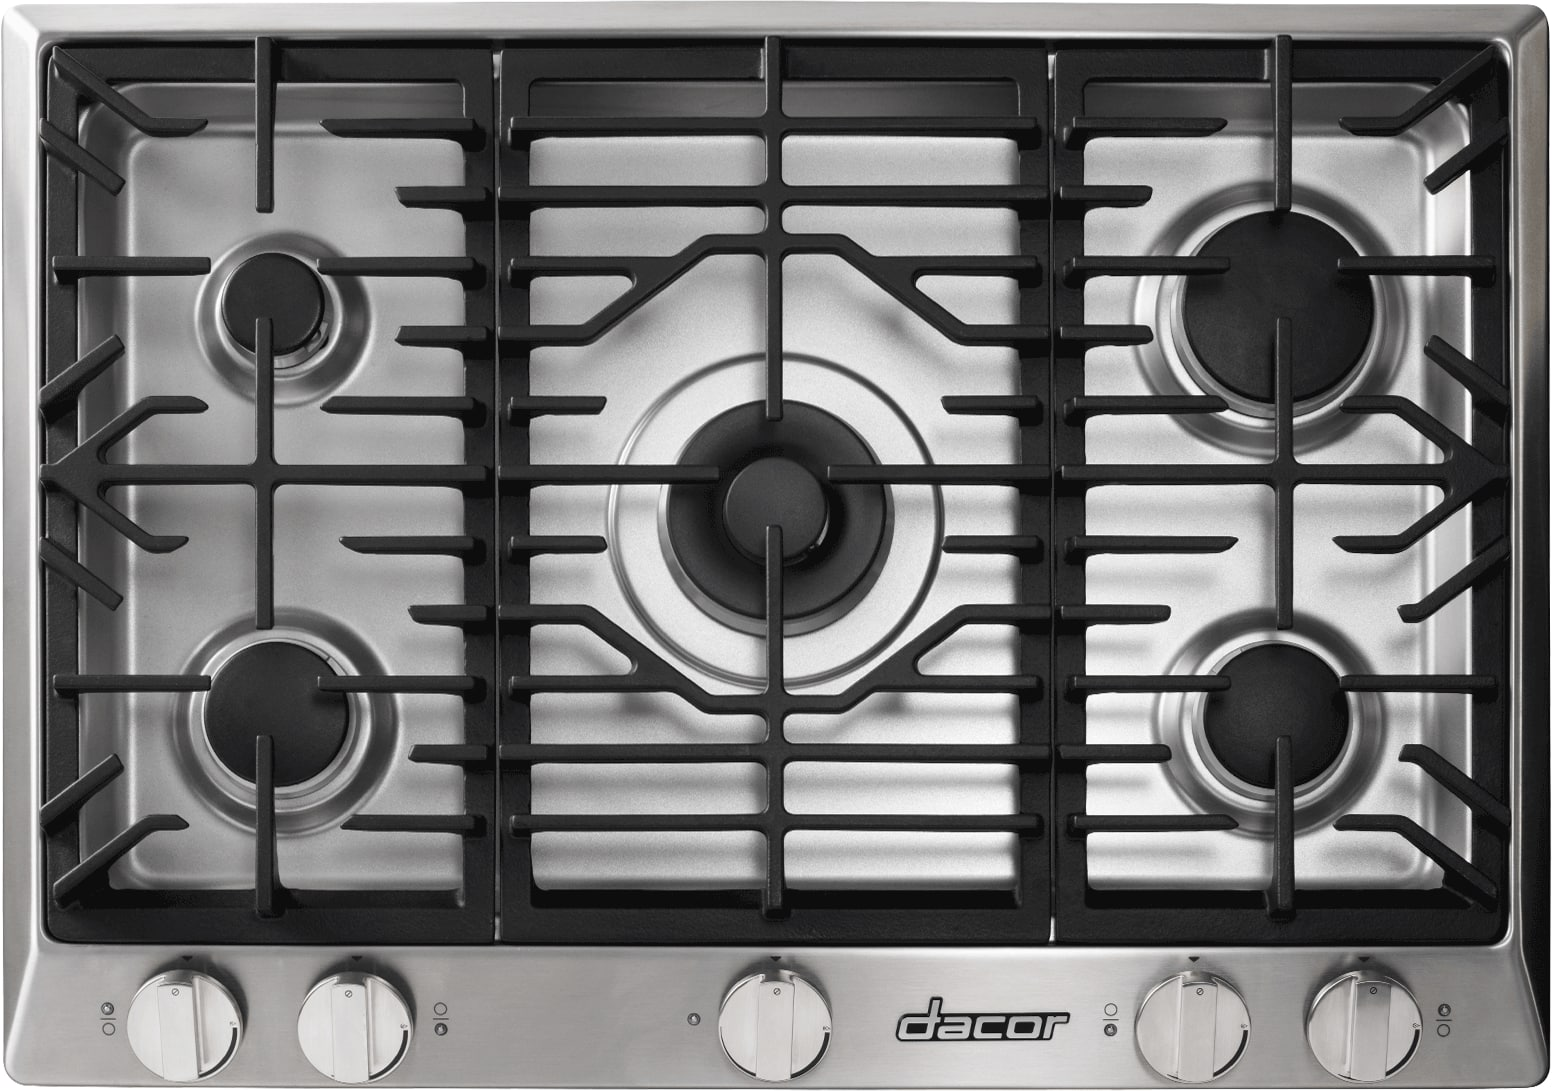 dacor rnct365g 36 inch gas cooktop with 5 sealed burners simmersear burner w melting feature continuous grates permaflame ignition - Gas Cooktop With Downdraft